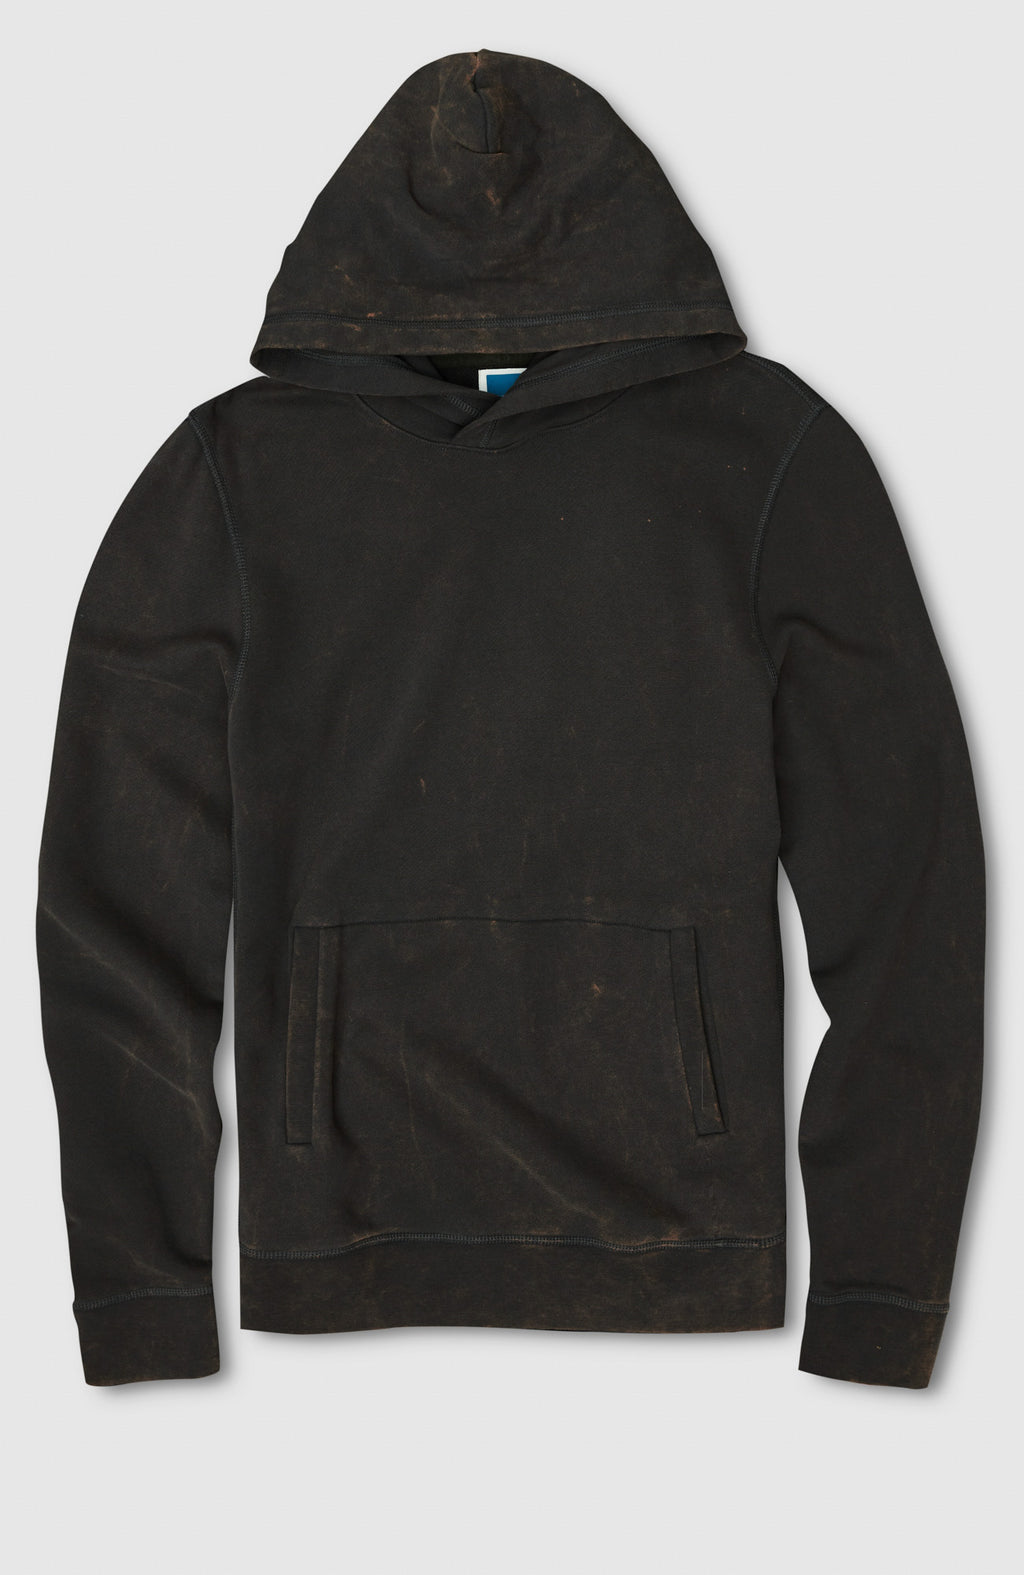 Dunston Pullover - Charcoal Multi